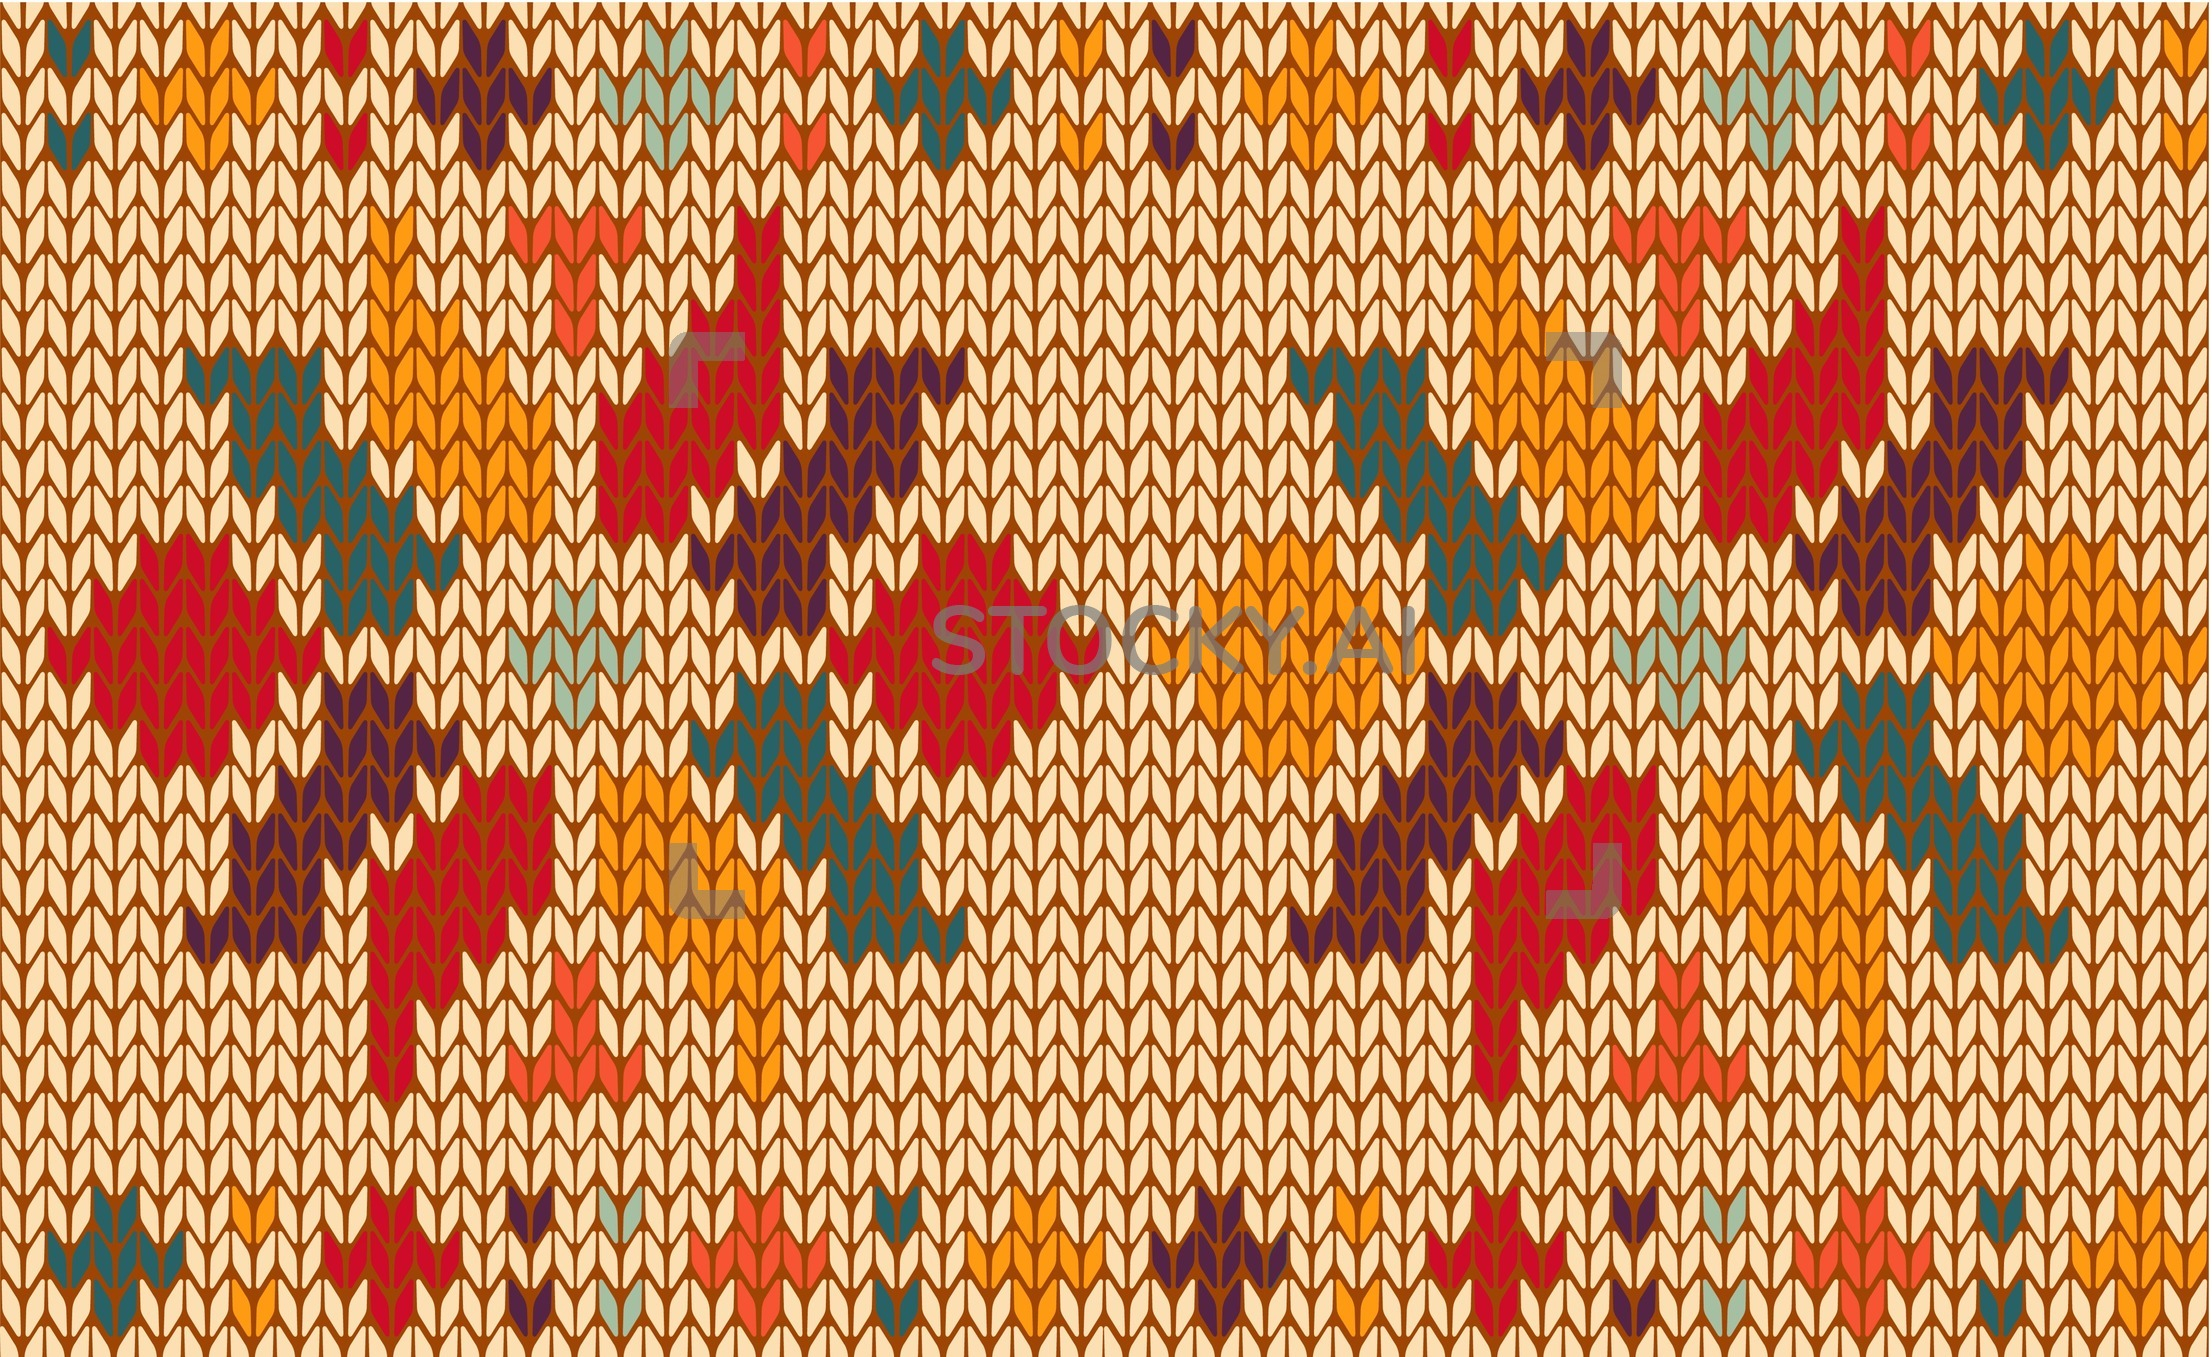 Knitted Pattern Image Of Retro Floral Knitted Pattern Background